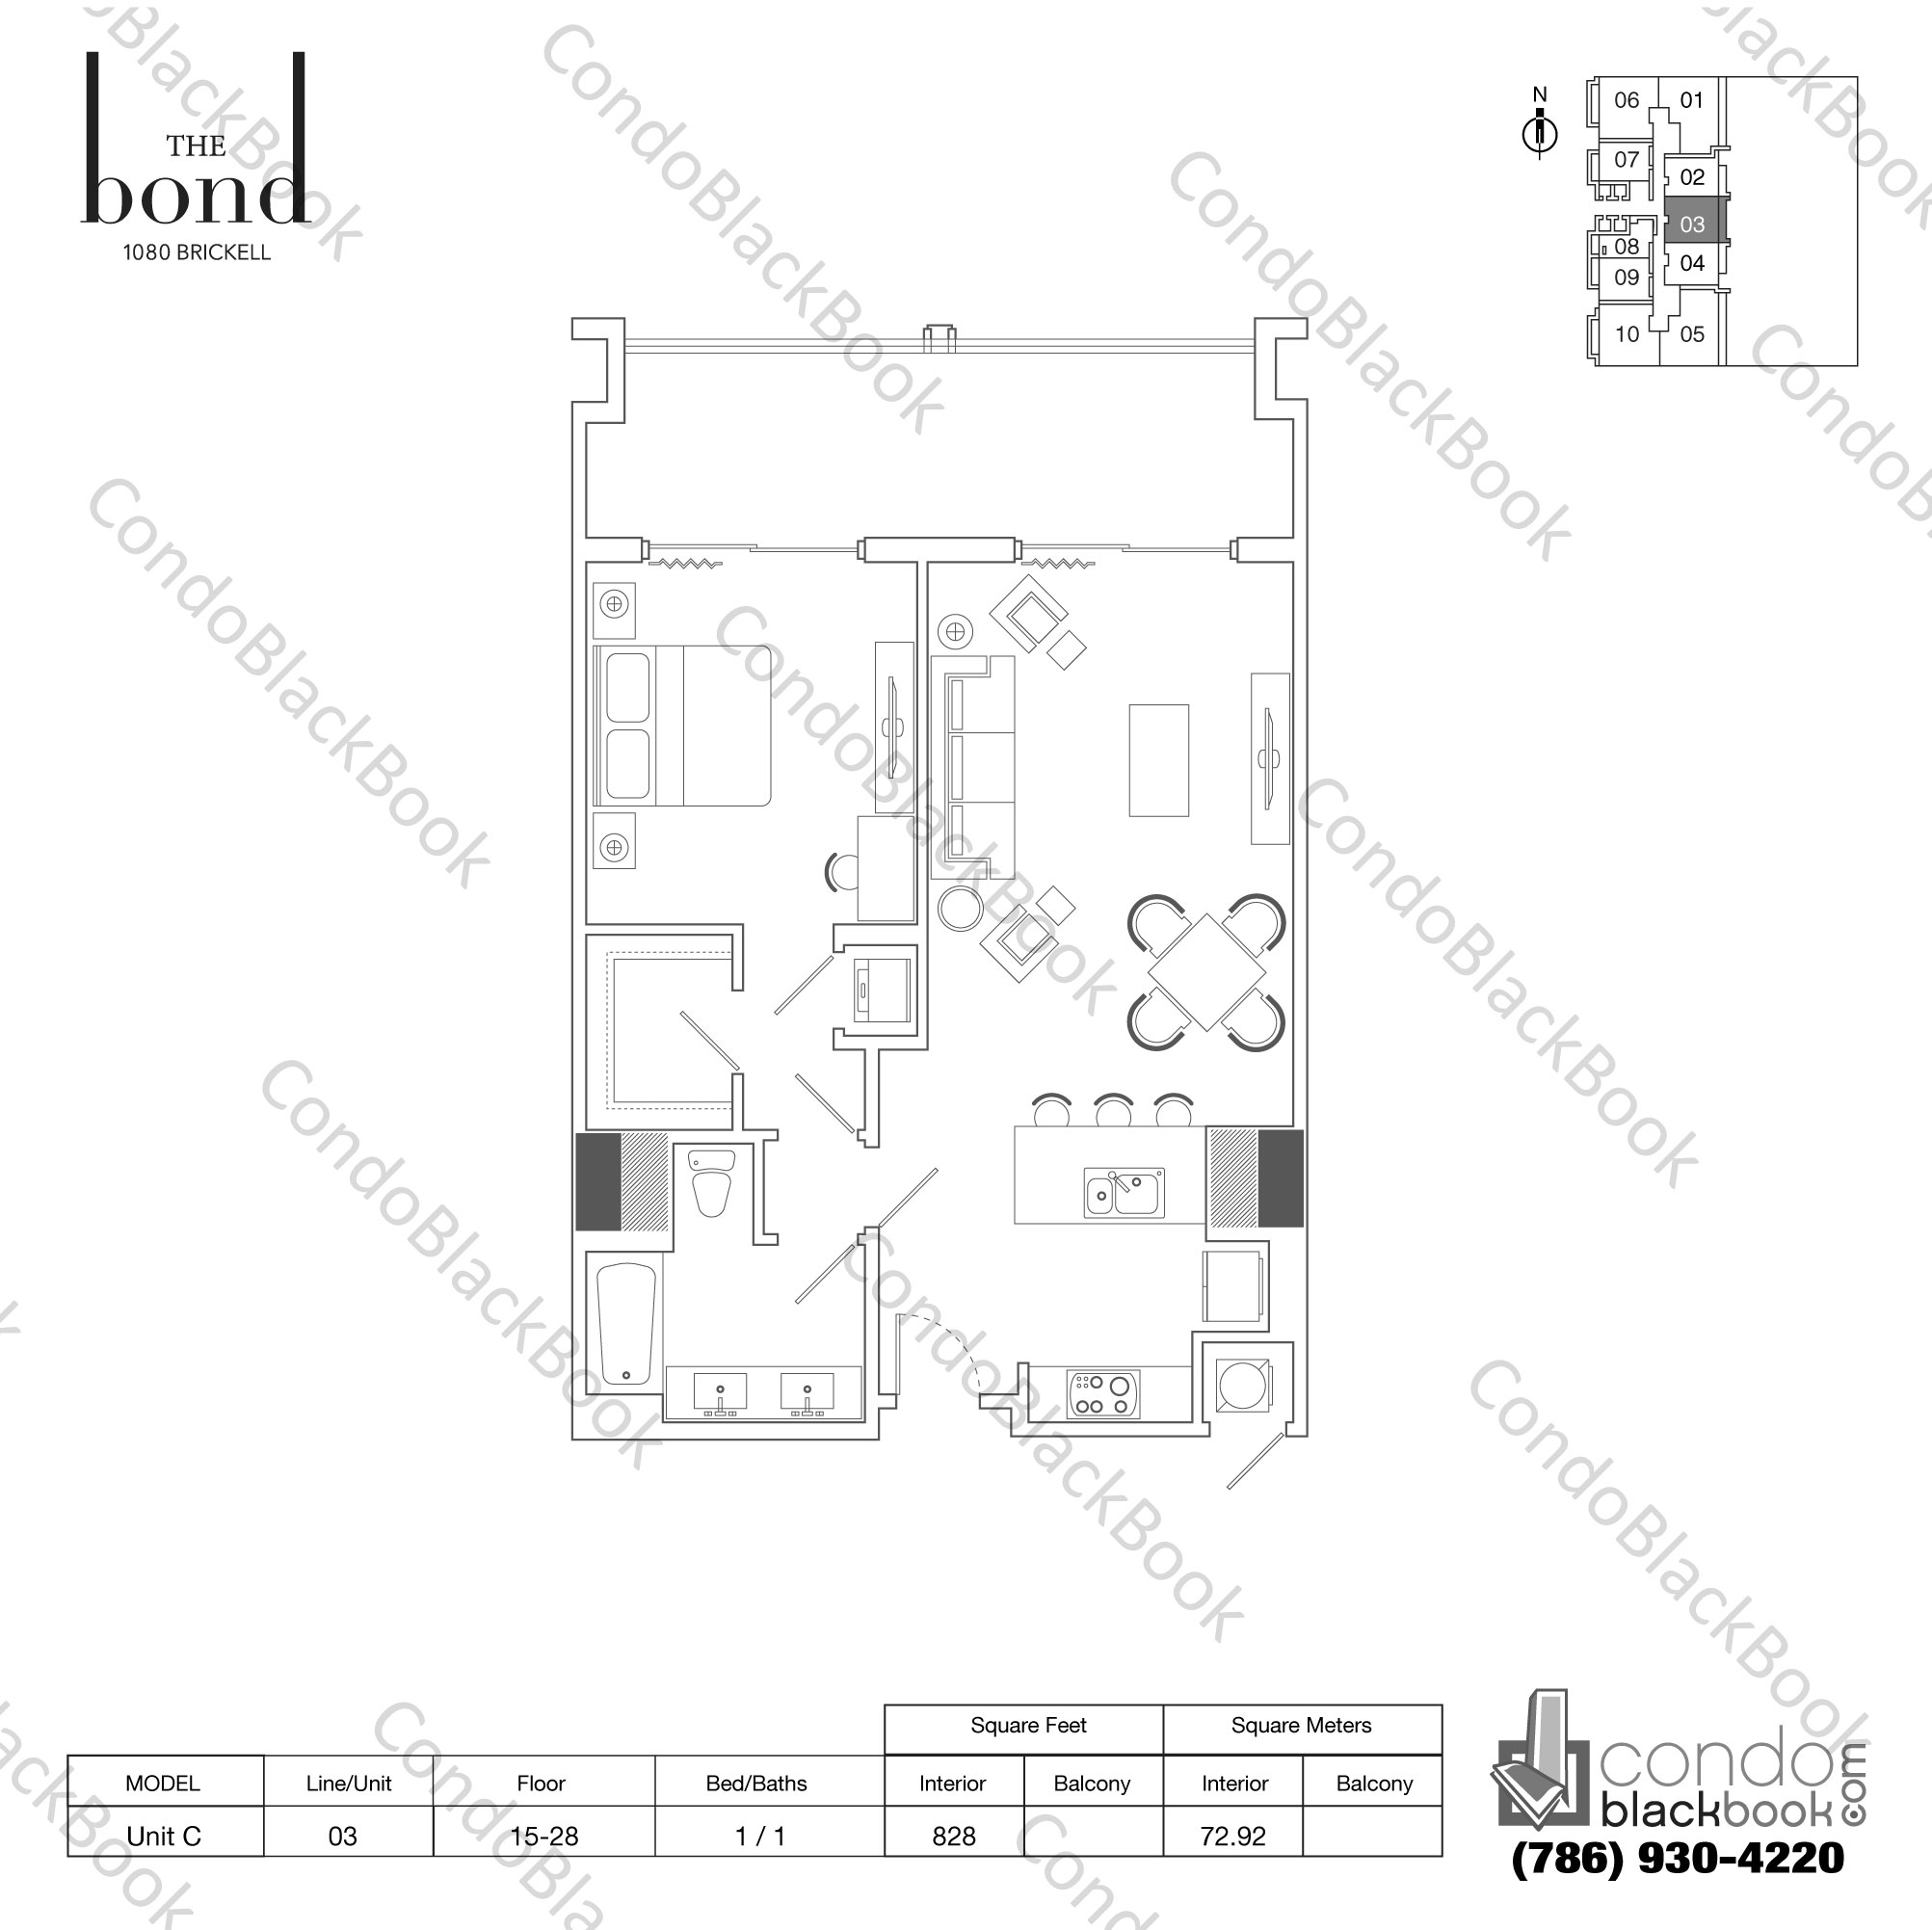 Floor plan for The Bond Brickell Miami, model UNIT C, line -, 1/1 bedrooms, 828 sq ft